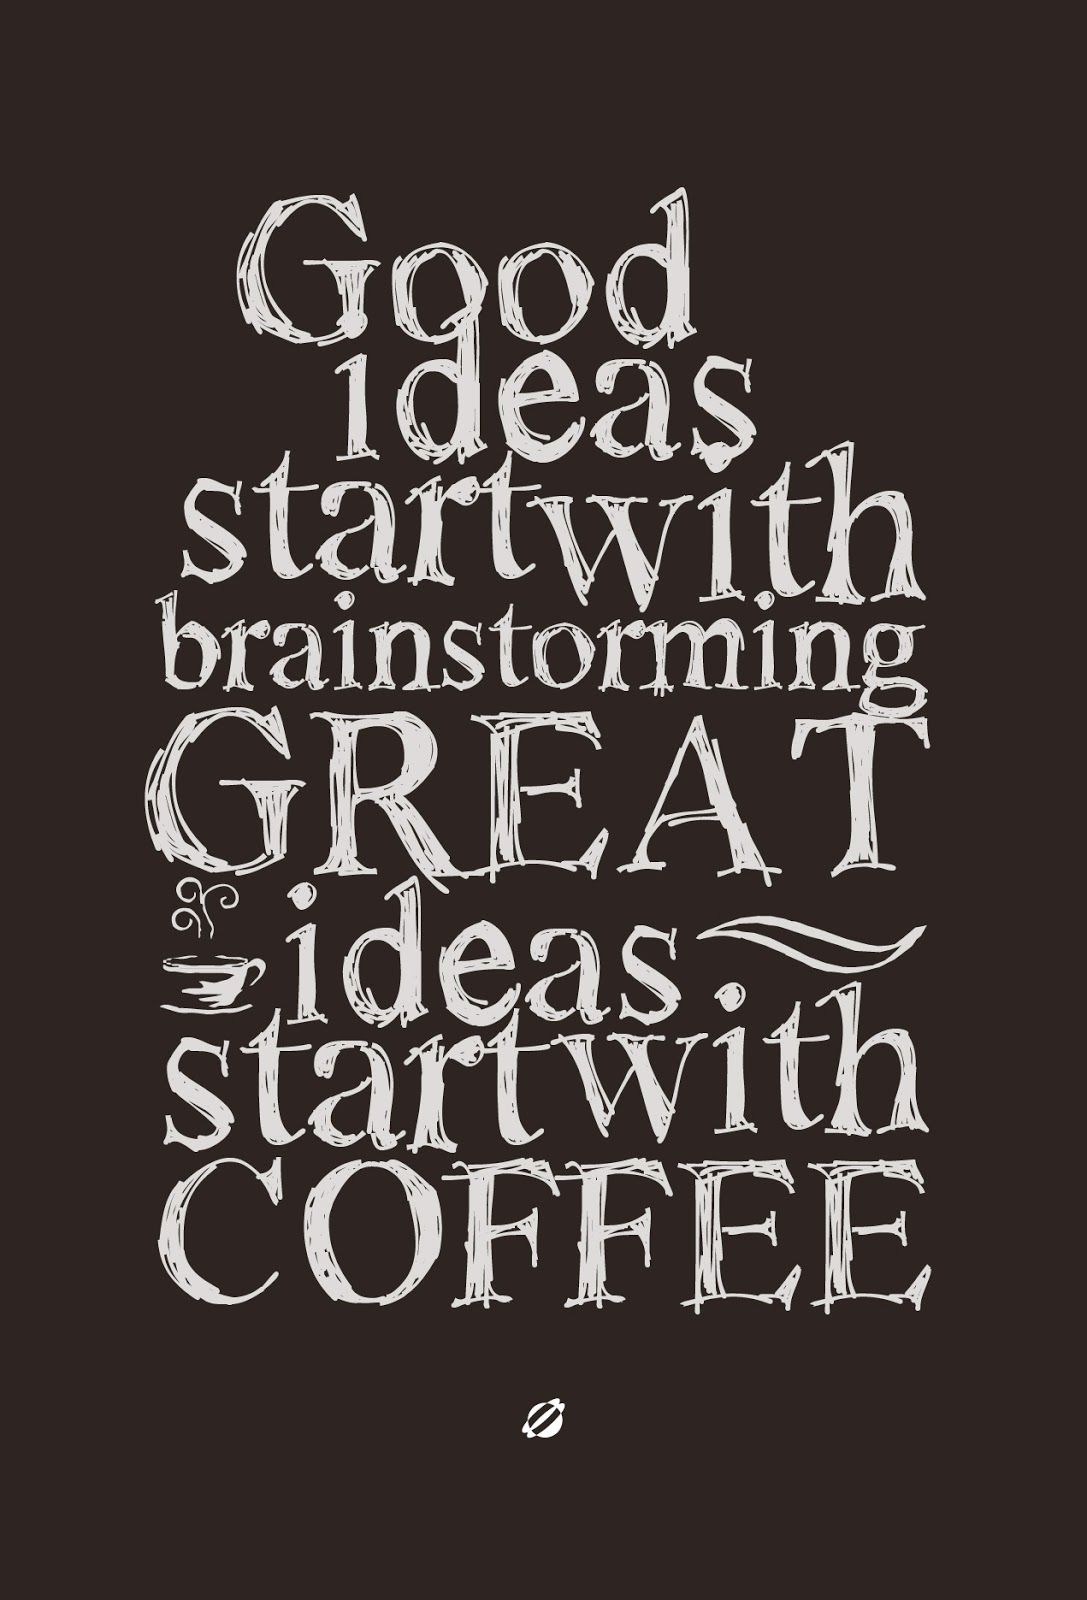 Get Caffeinated And Carpe The Heck Out Of This Diem Lostbumblebee 2013 Good Ideas Versus Great Ideas Download This Fr Coffee Quotes Coffee Humor Coffee Love